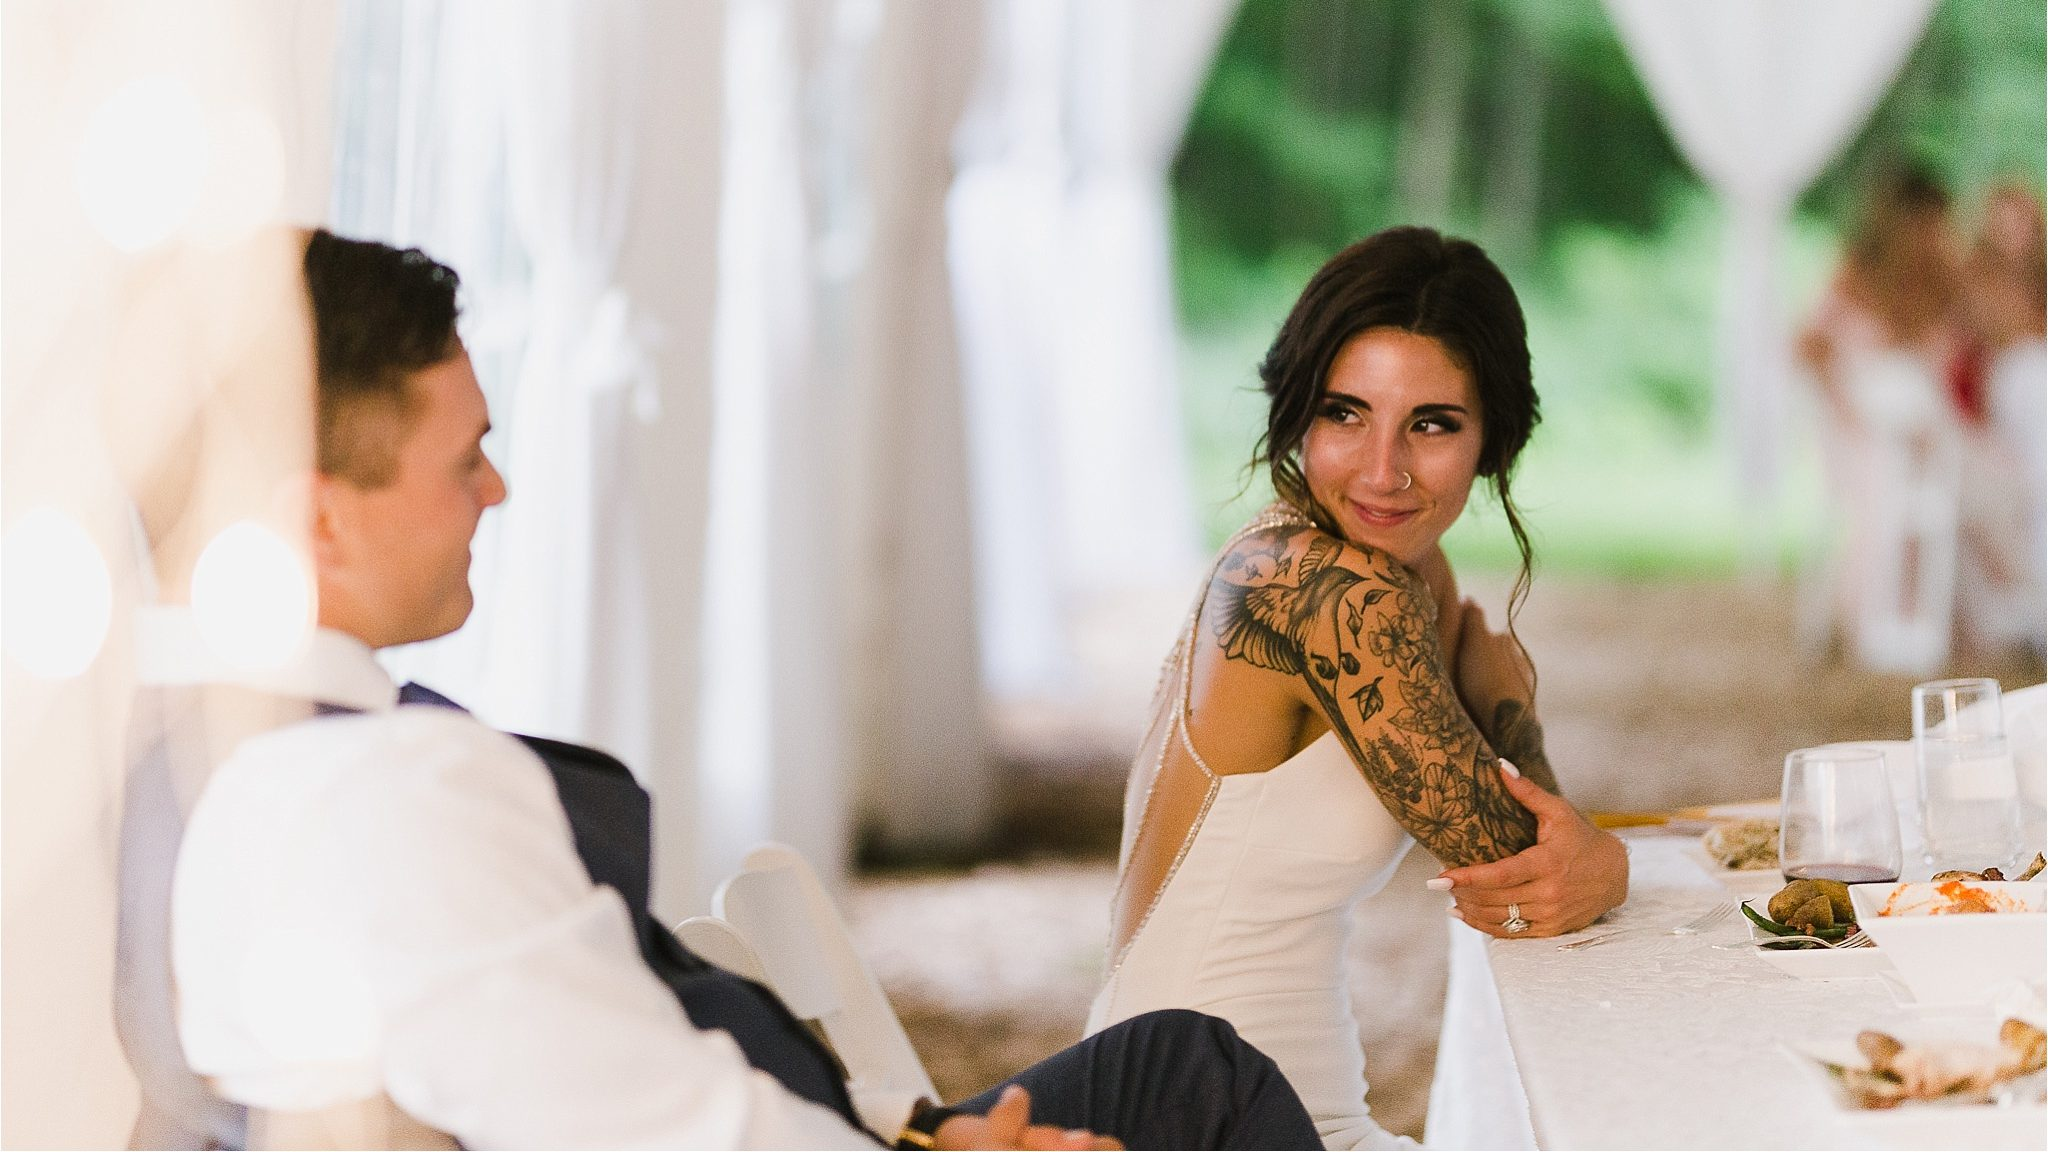 Bride and groom candid moment at outdoor tented wedding reception